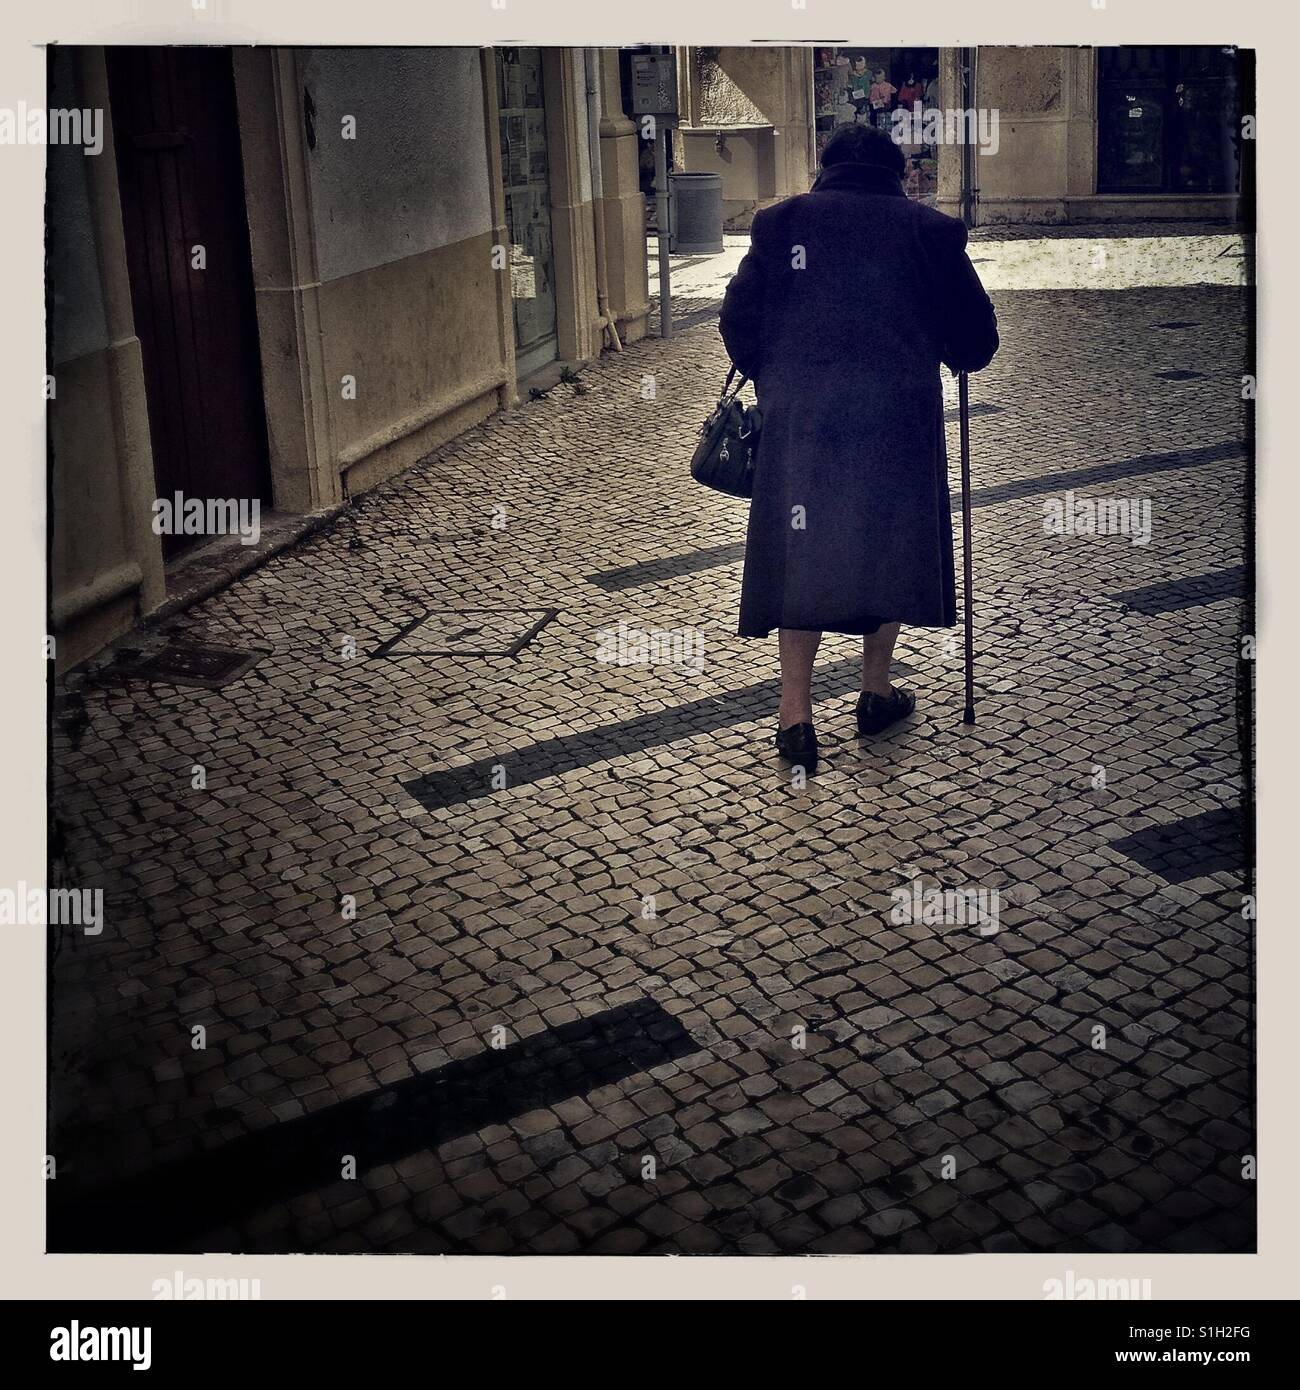 The back view of an old lady walking on the street - Stock Image